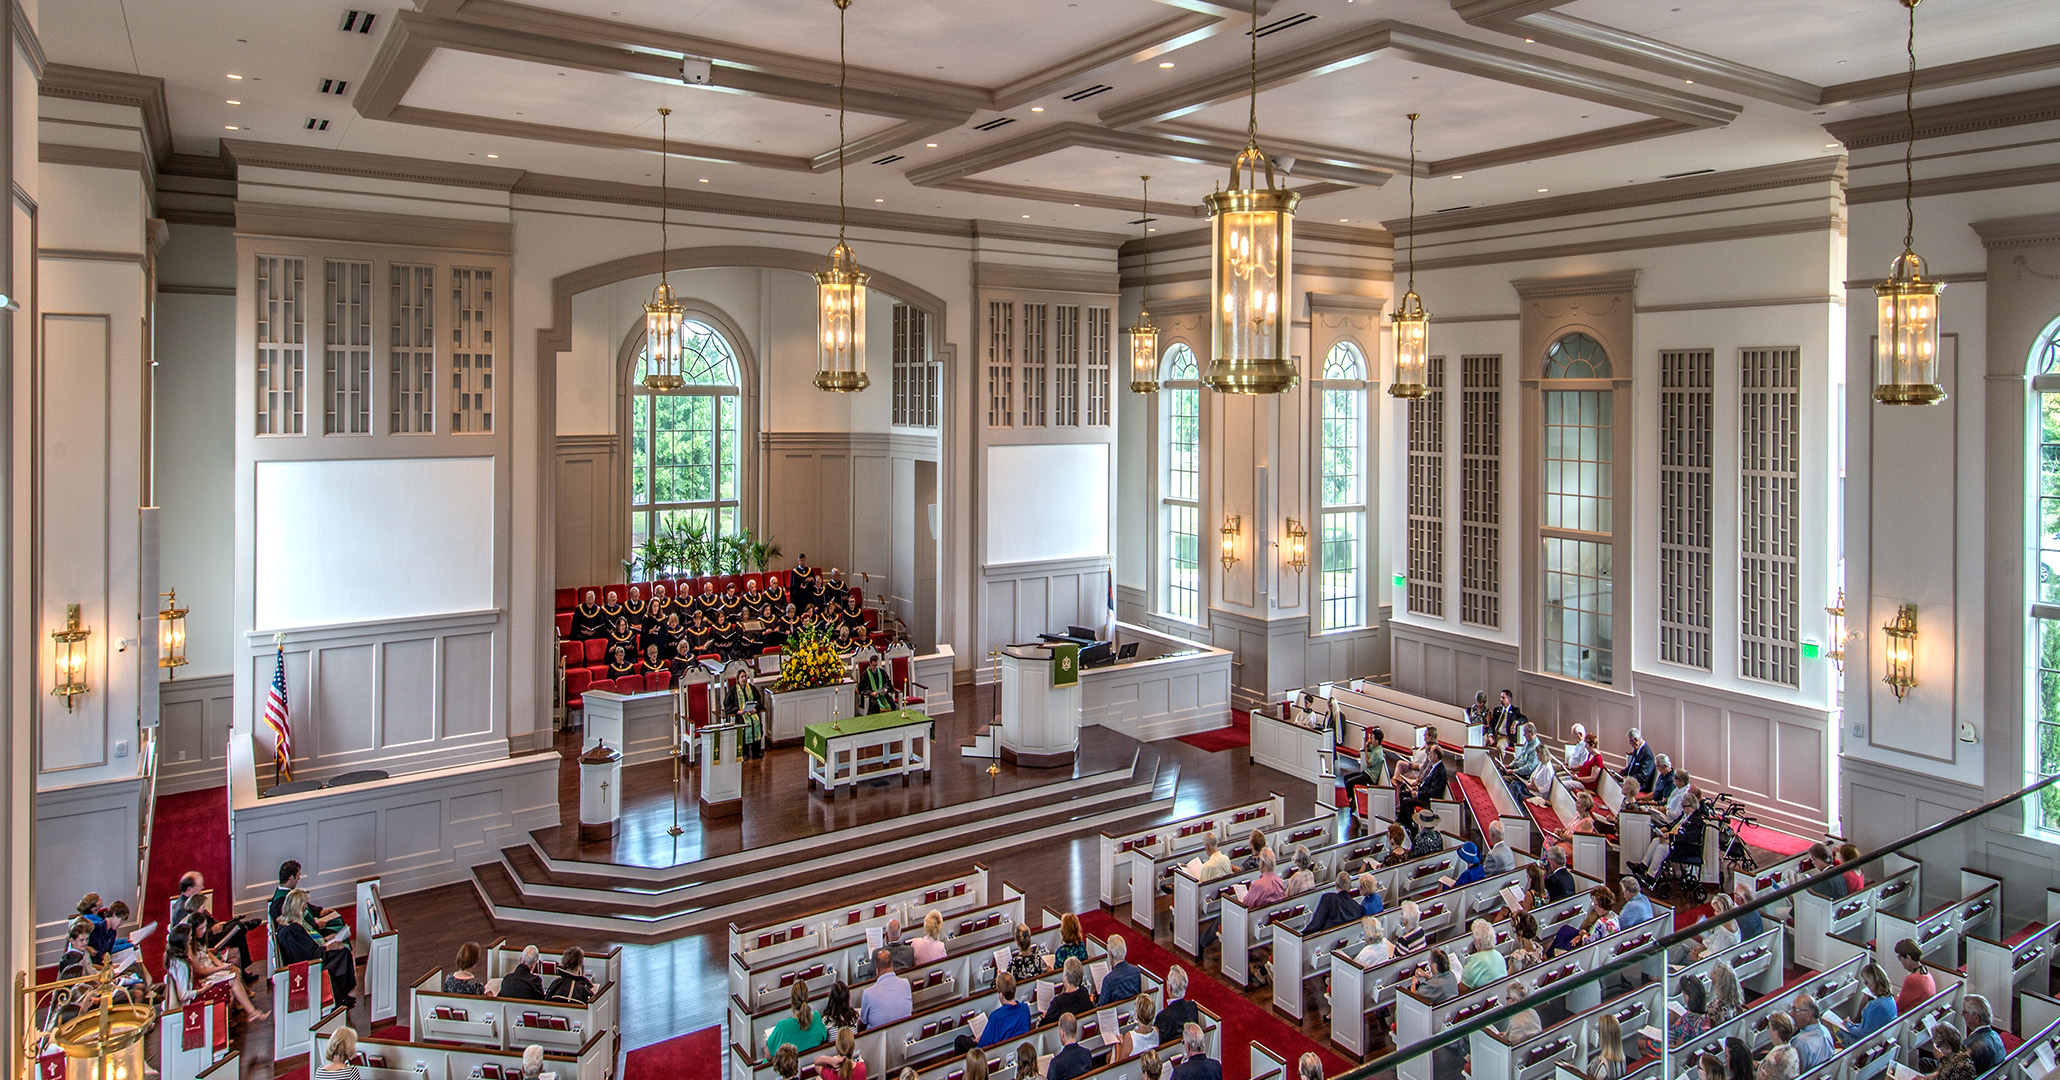 Church goers enjoying the newly designed sanctuary at the First Presbyterian Church in Myrtle Beach.